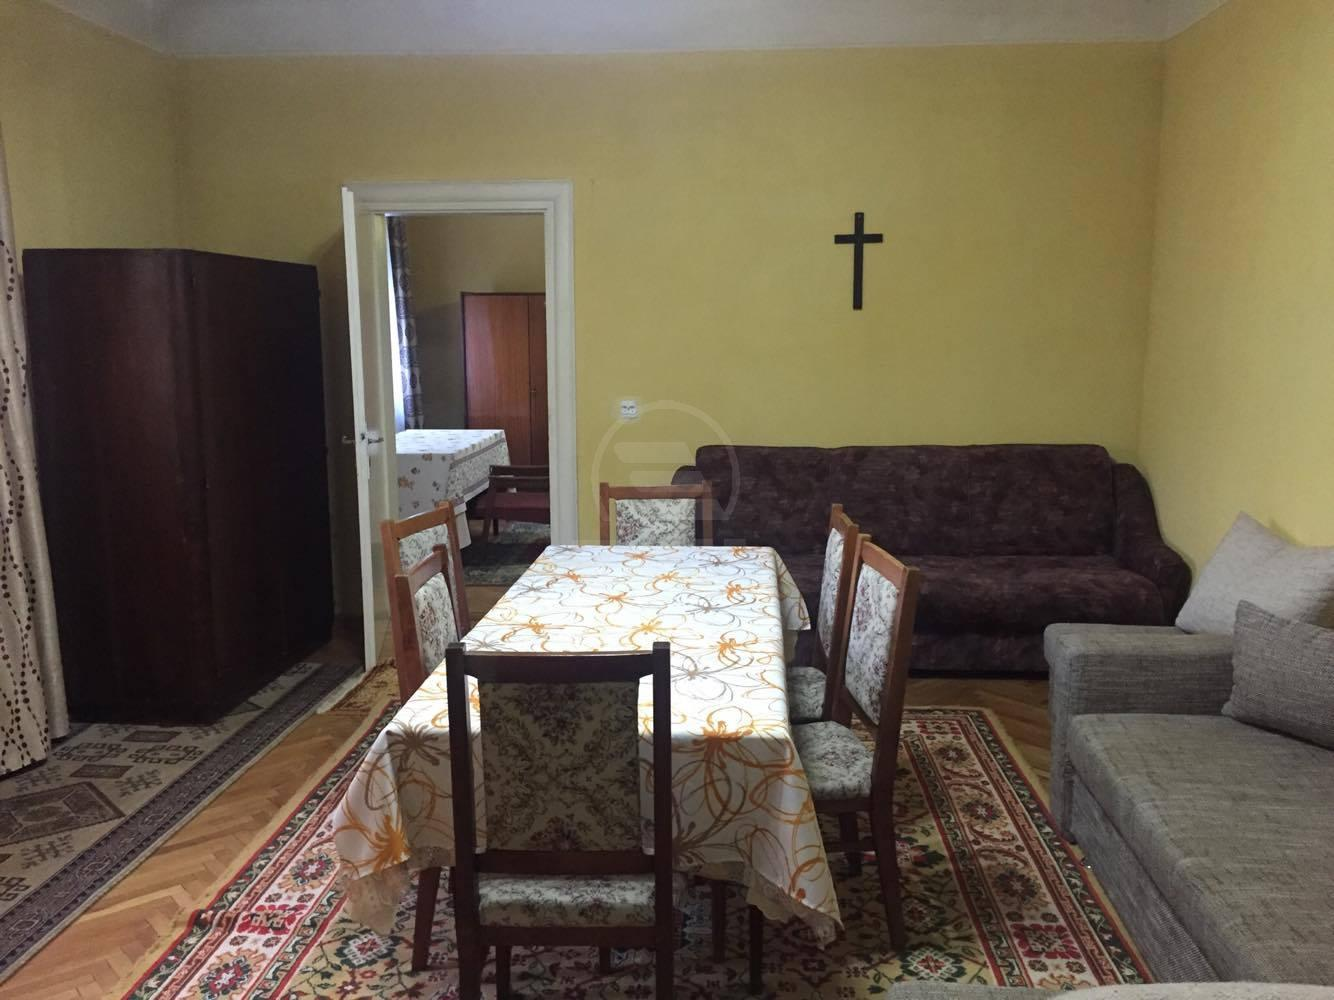 Office for rent 3 rooms, BICJ281593-8